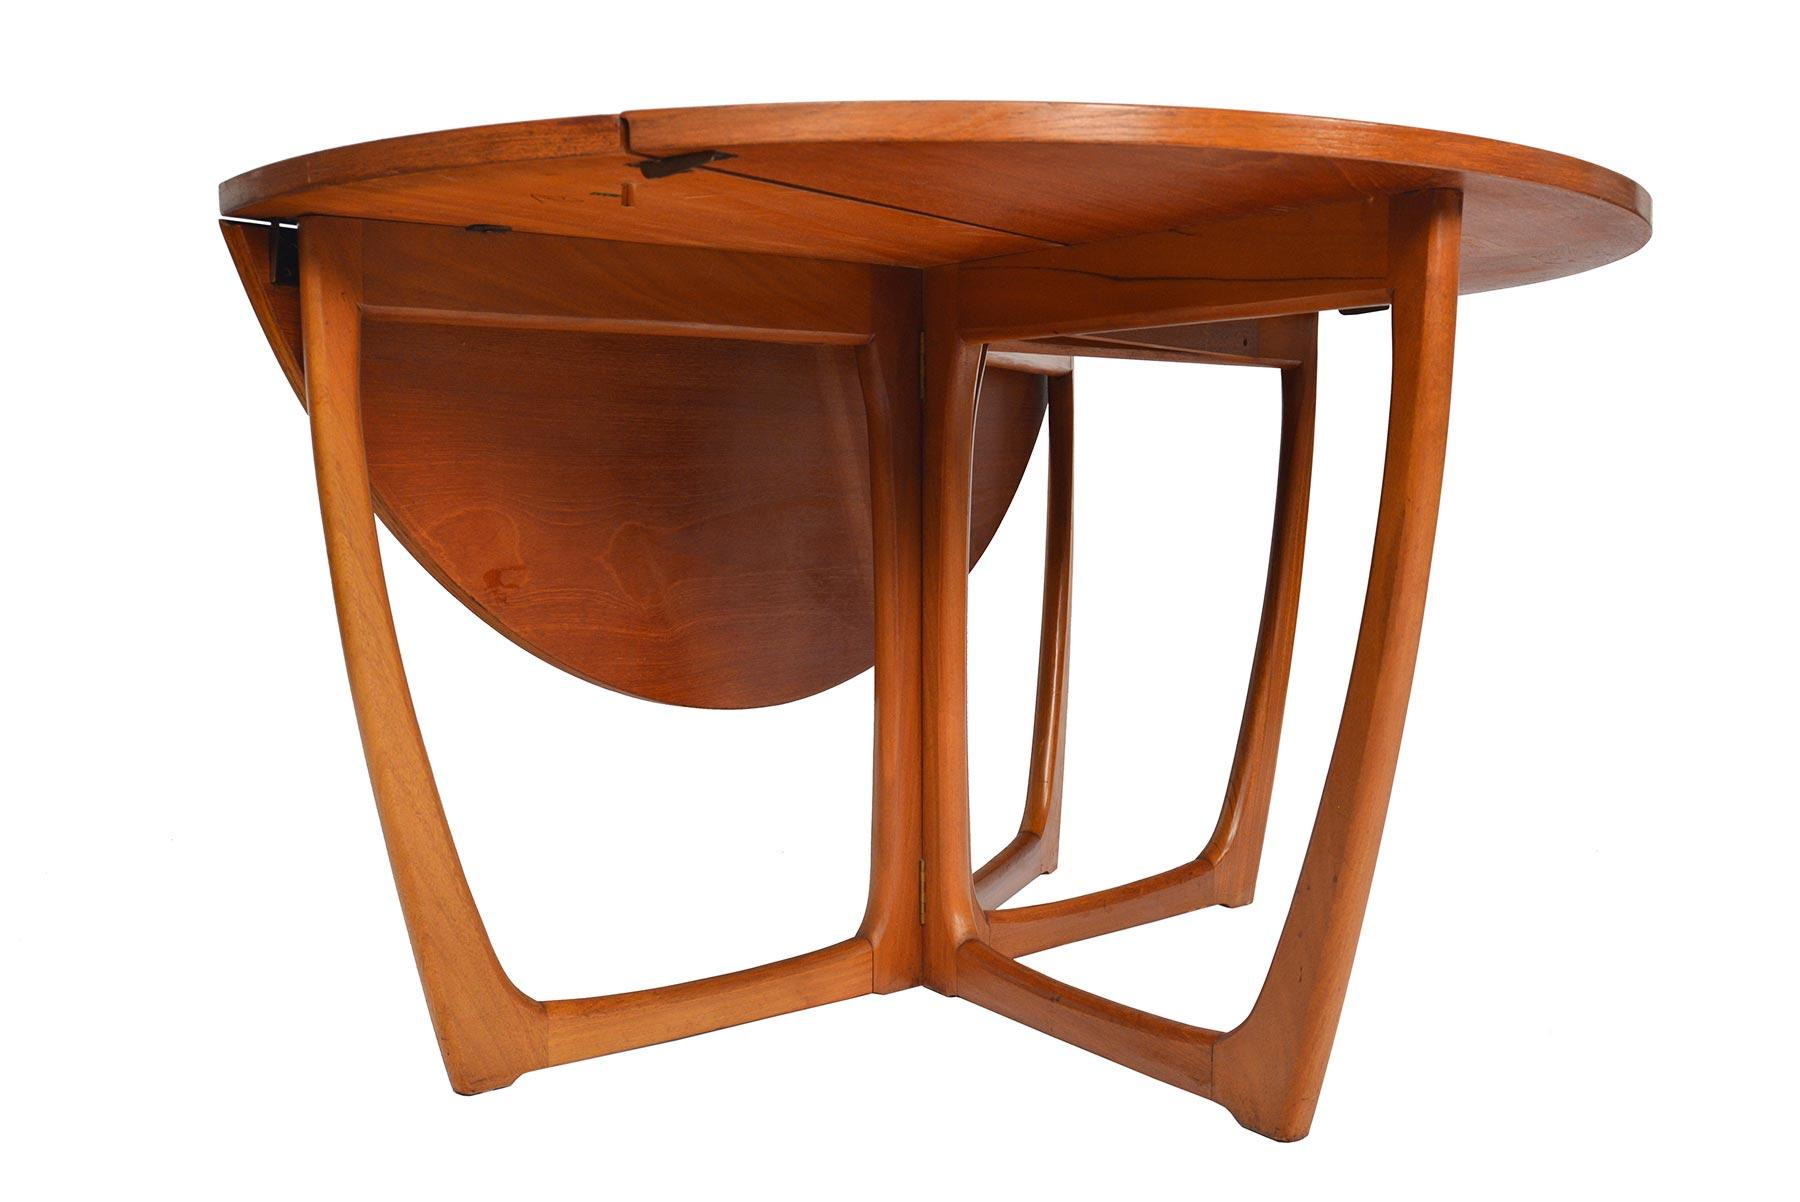 Round Drop Leaf Dining Table By Beithcraft For Sale At 1stdibs